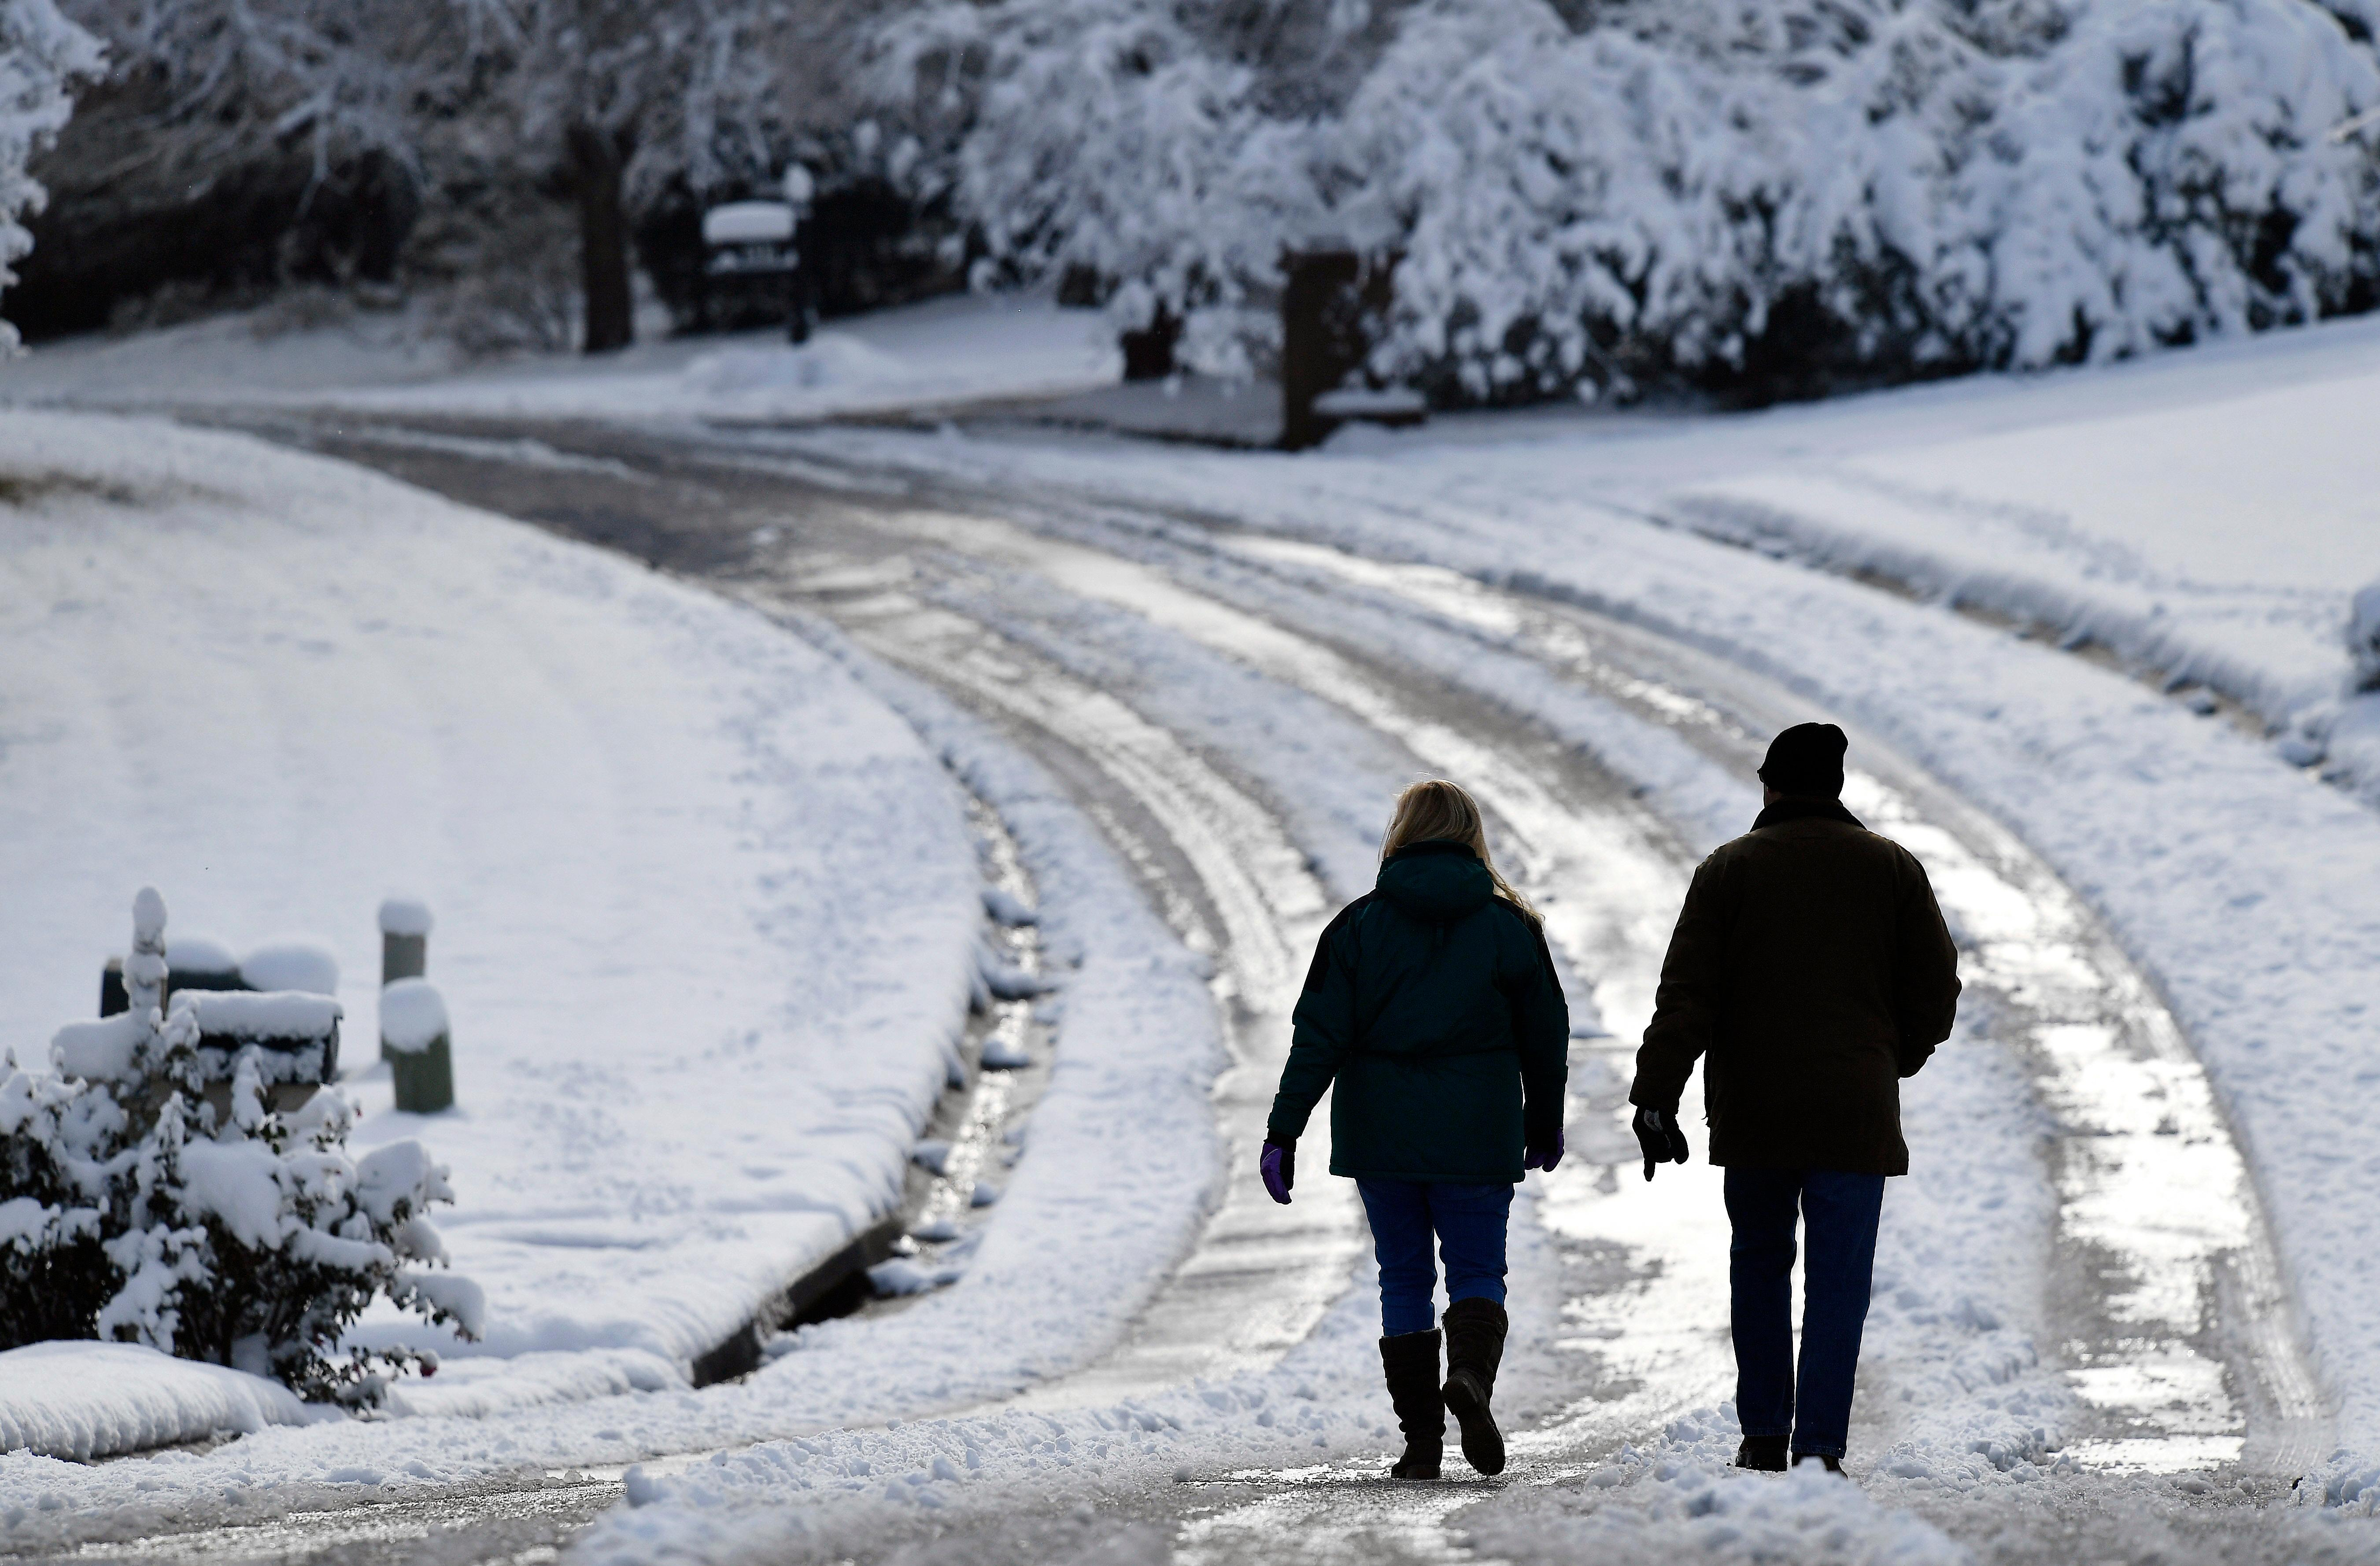 People walk down a snow covered road after a heavy snow, Saturday, Dec. 9, 2017, in Kennesaw, Ga. The frigid temperatures behind a cold front combined with moisture off the Gulf of Mexico to bring unusual wintry weather to parts of the South. (AP Photo/Mike Stewart)